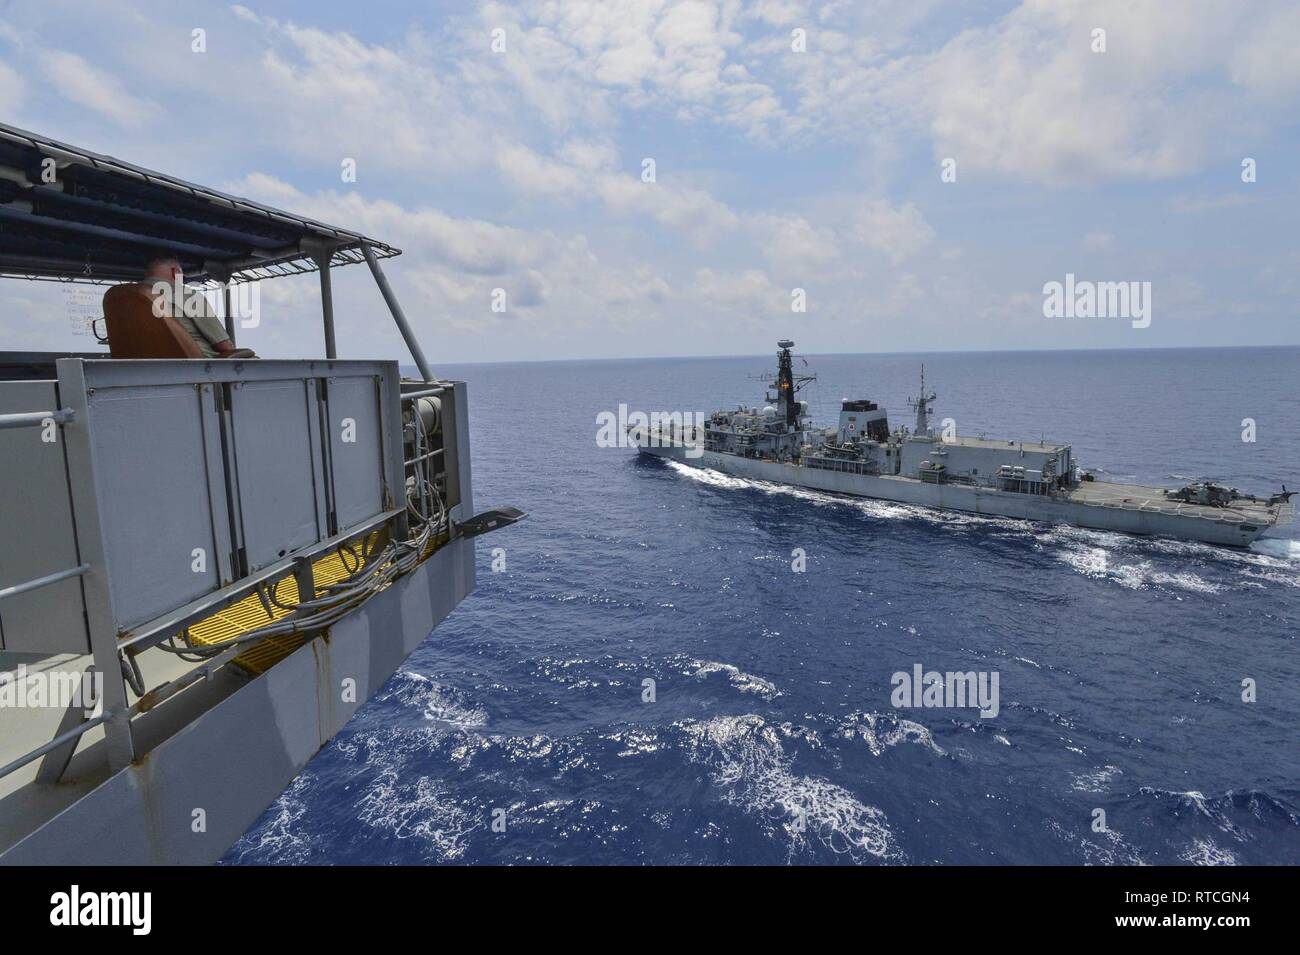 GULF OF THAILAND (Feb. 18 ,2019) Civilian Mariner Kevin Sauls, Ship's Master aboard the Henry J. Kaiser-class fleet replenishment oiler USNS Guadalupe (T-AO 200),  observes the Duke-class frigate HMS Montrose (F 236) during a replenishment-at-sea drill. Guadalupe is conducting operations, providing logistical support to U.S. Navy and allied forces operating in the U.S. 7th Fleet area of responsibility. Stock Photo